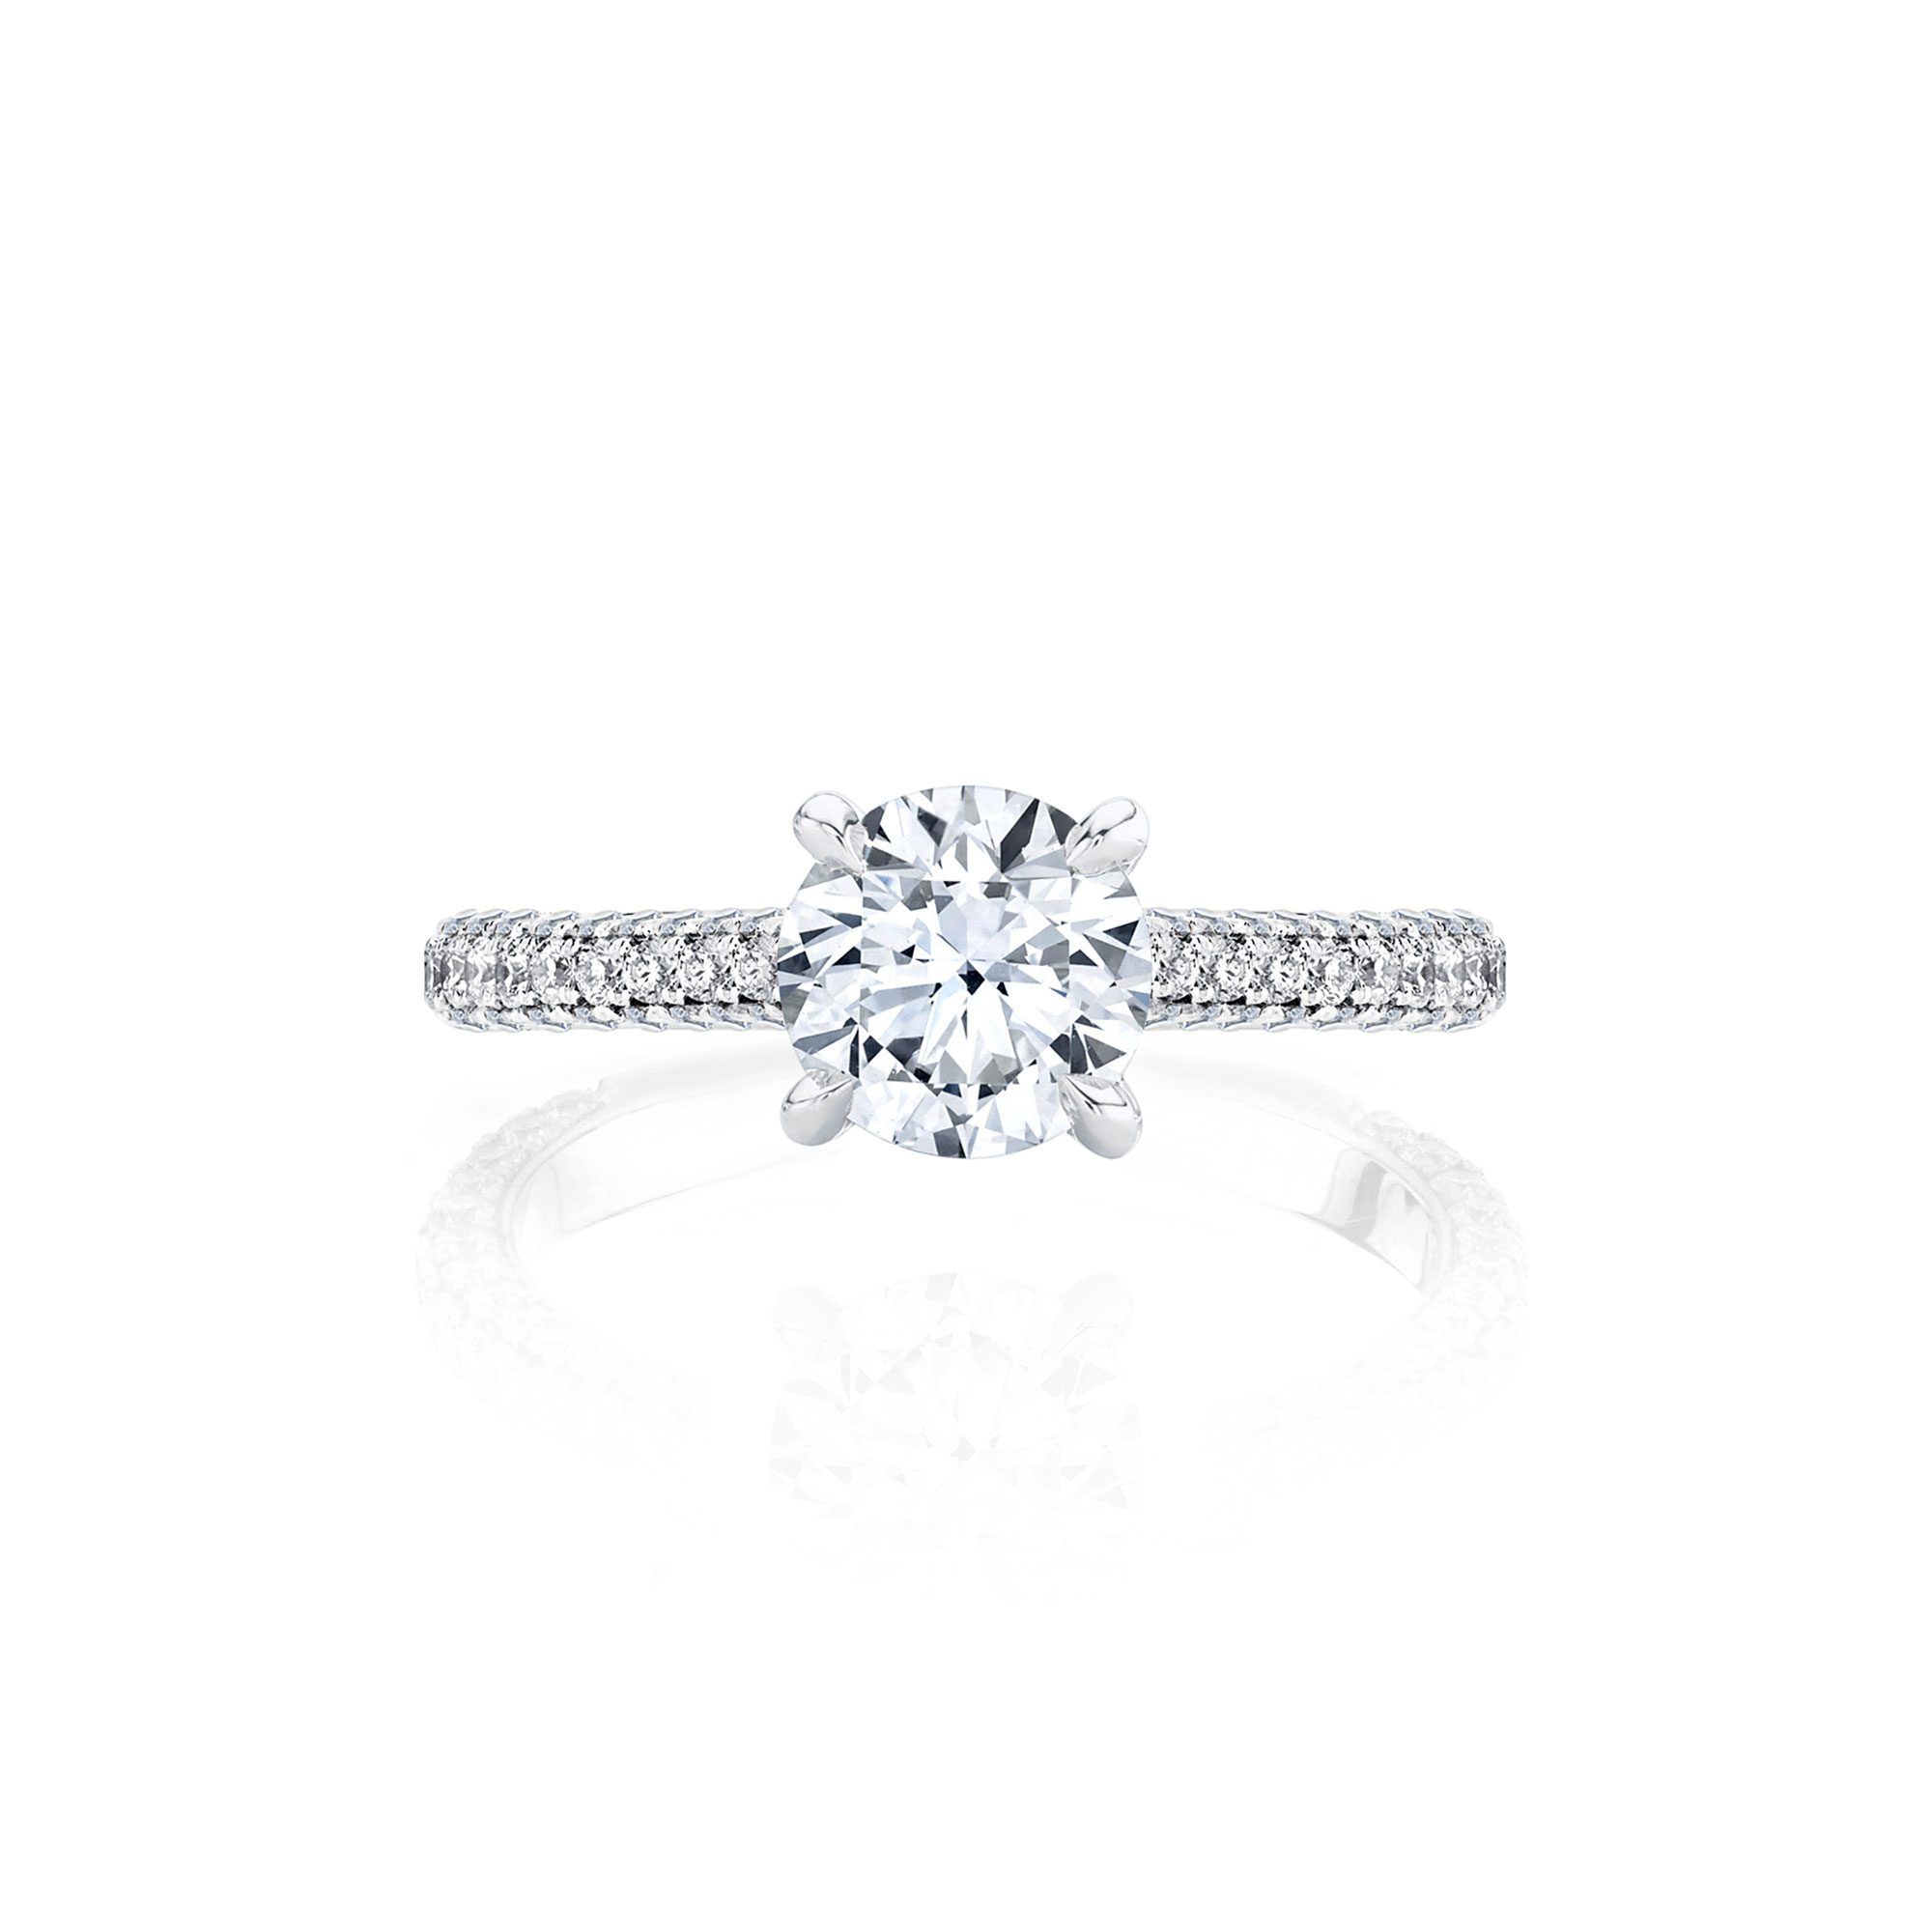 Jacqueline Solitaire Round Brilliant Cut Lab Diamond Engagement Ring with three row pavé 18k white gold band.